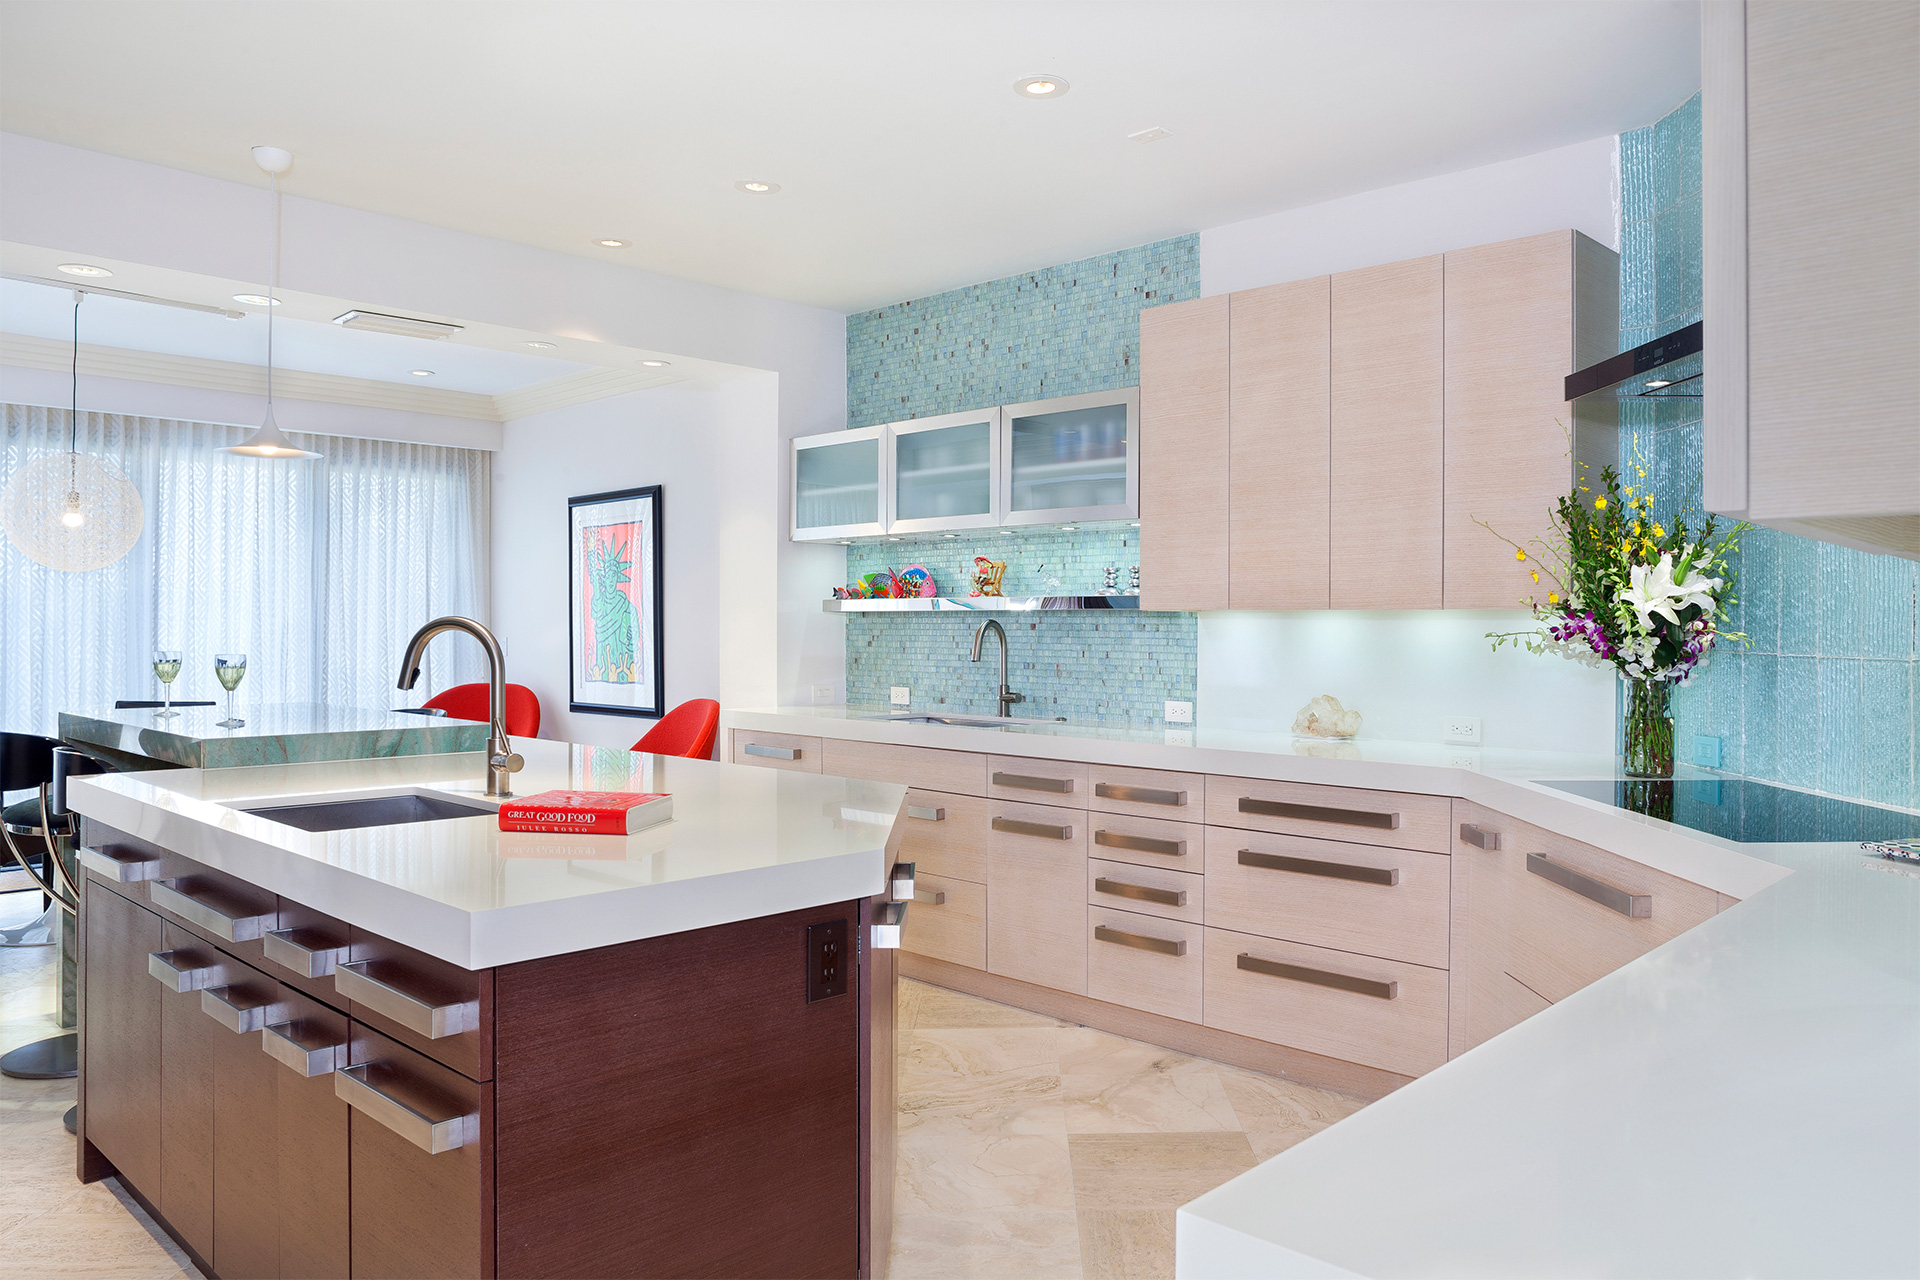 Wood Duck Drive | Boca Raton - The Place For Kitchens and Baths